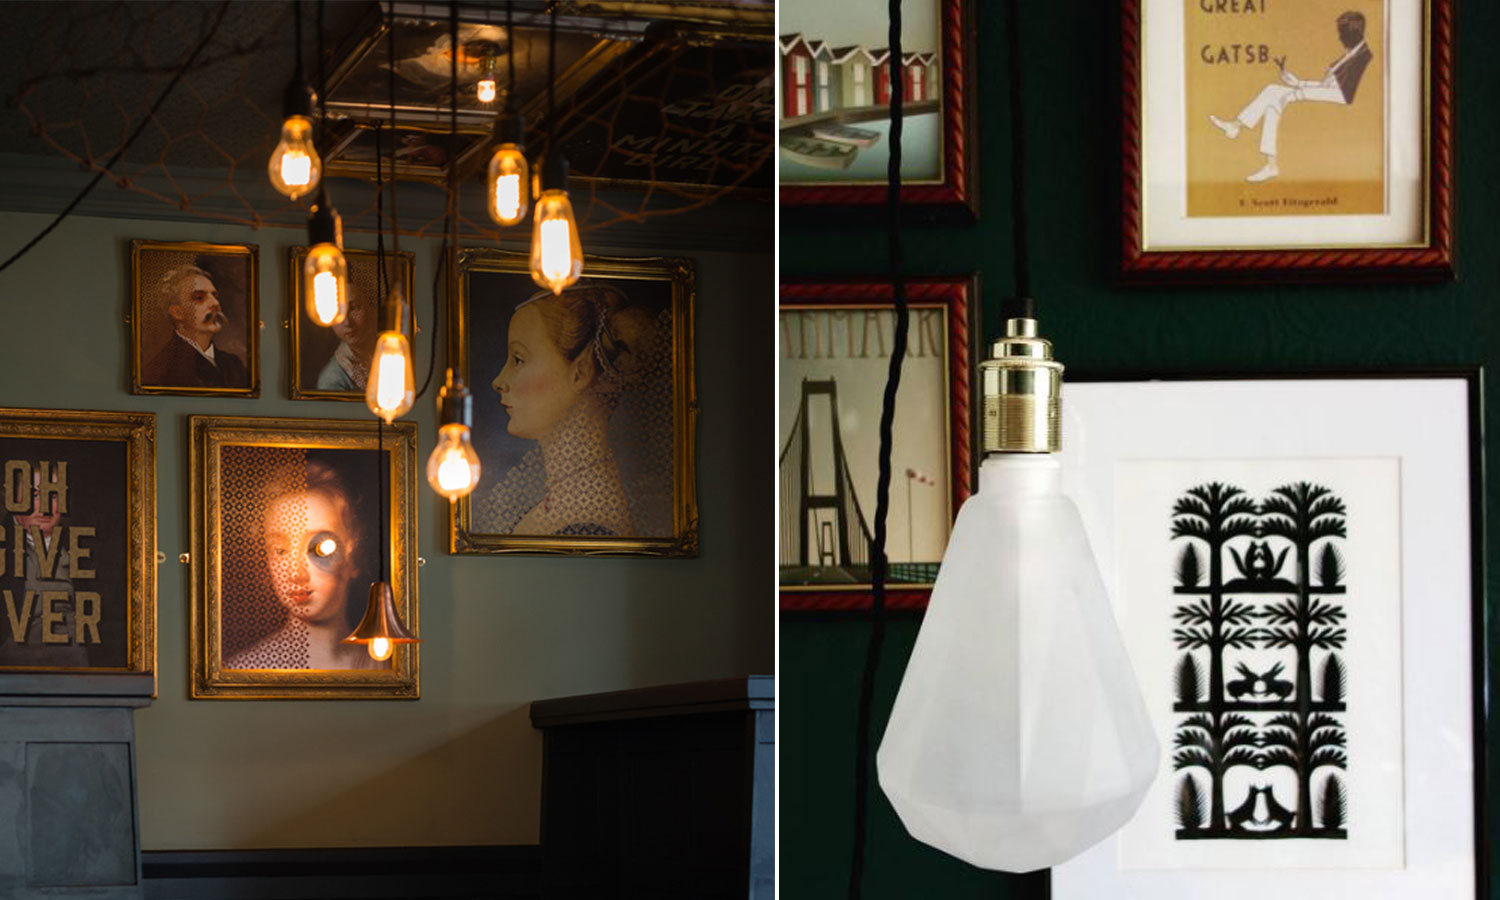 left image 6 bulbs suspended with framed paintings, right image frosted diamond bulb in front of framed prints